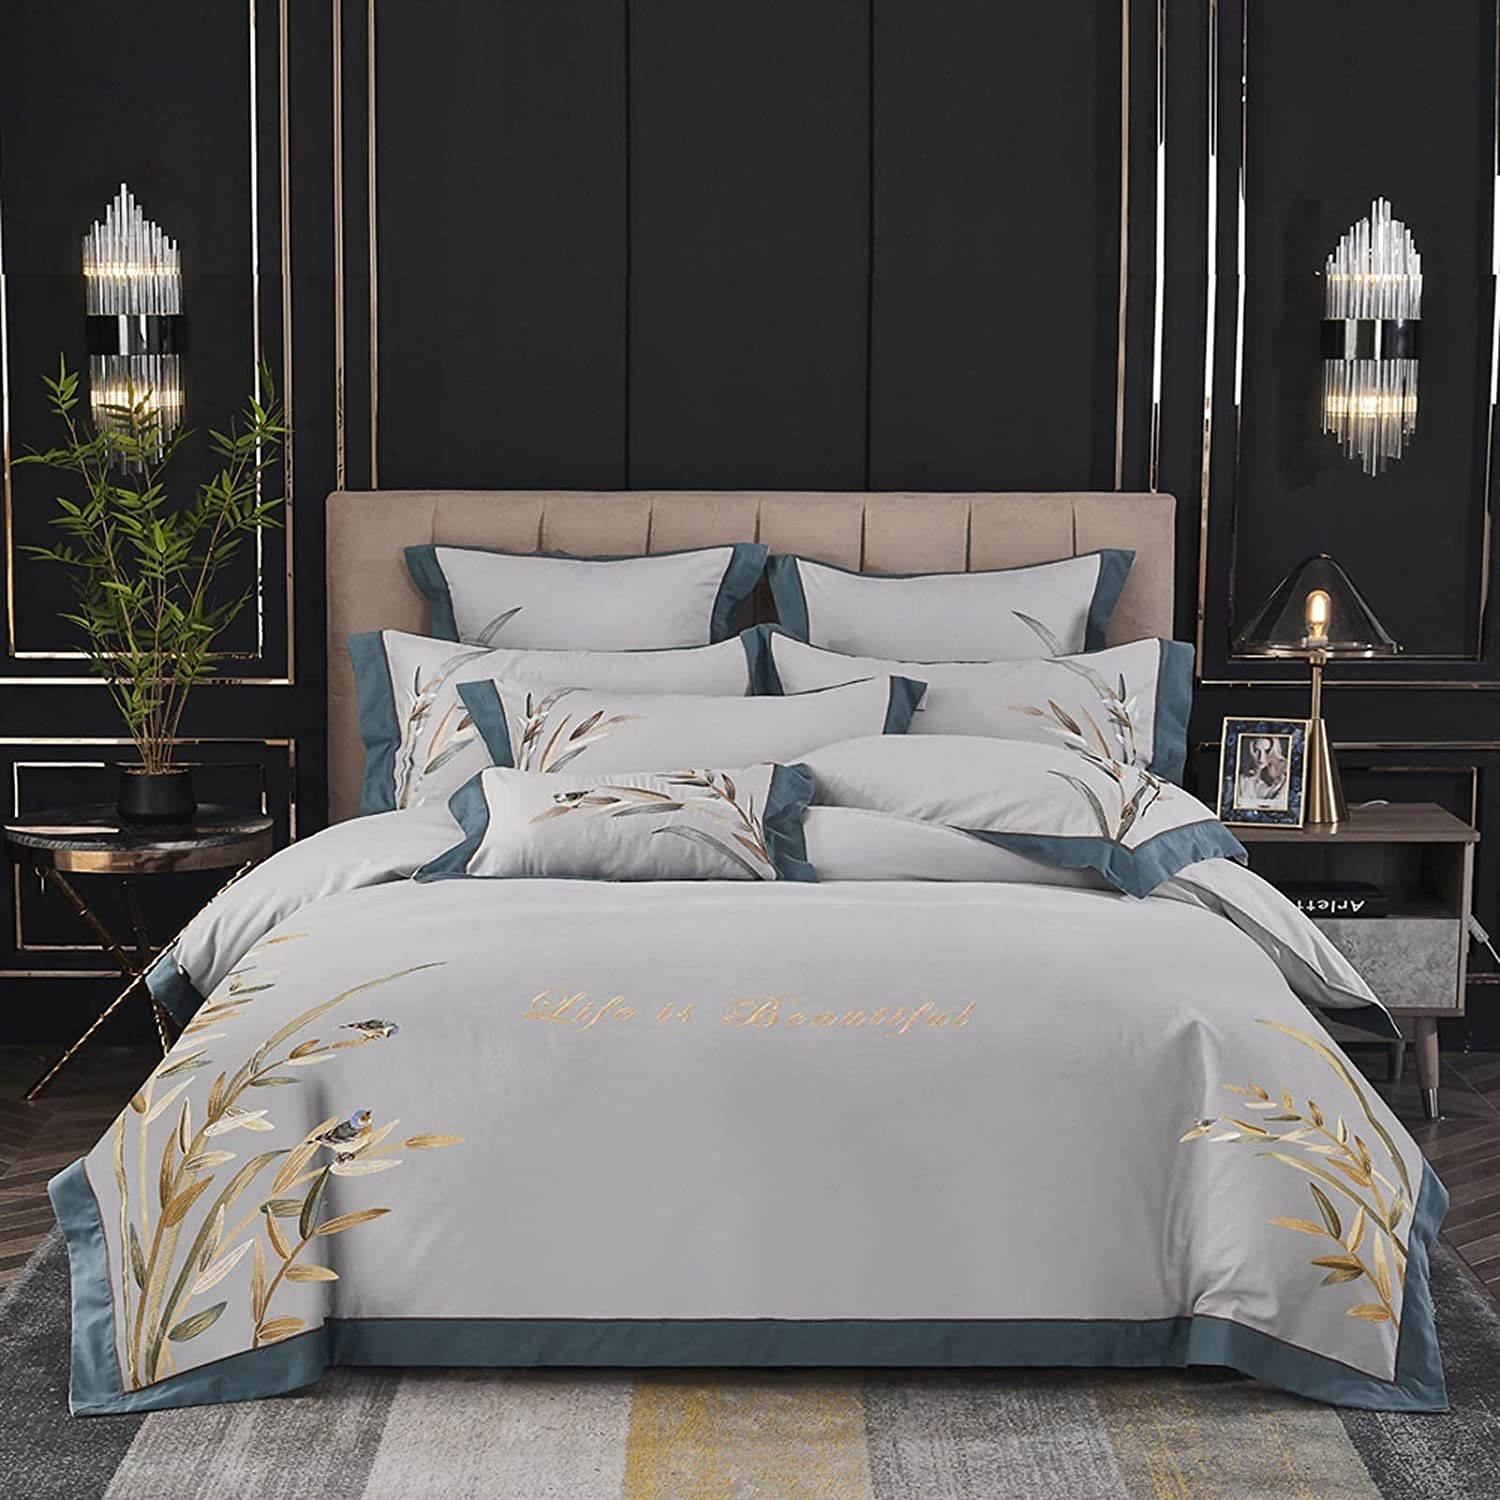 Bombing free shipping Luxuryl Bedding Set King Queen Size L Bamboo Low price Leaf Embroidery Bed